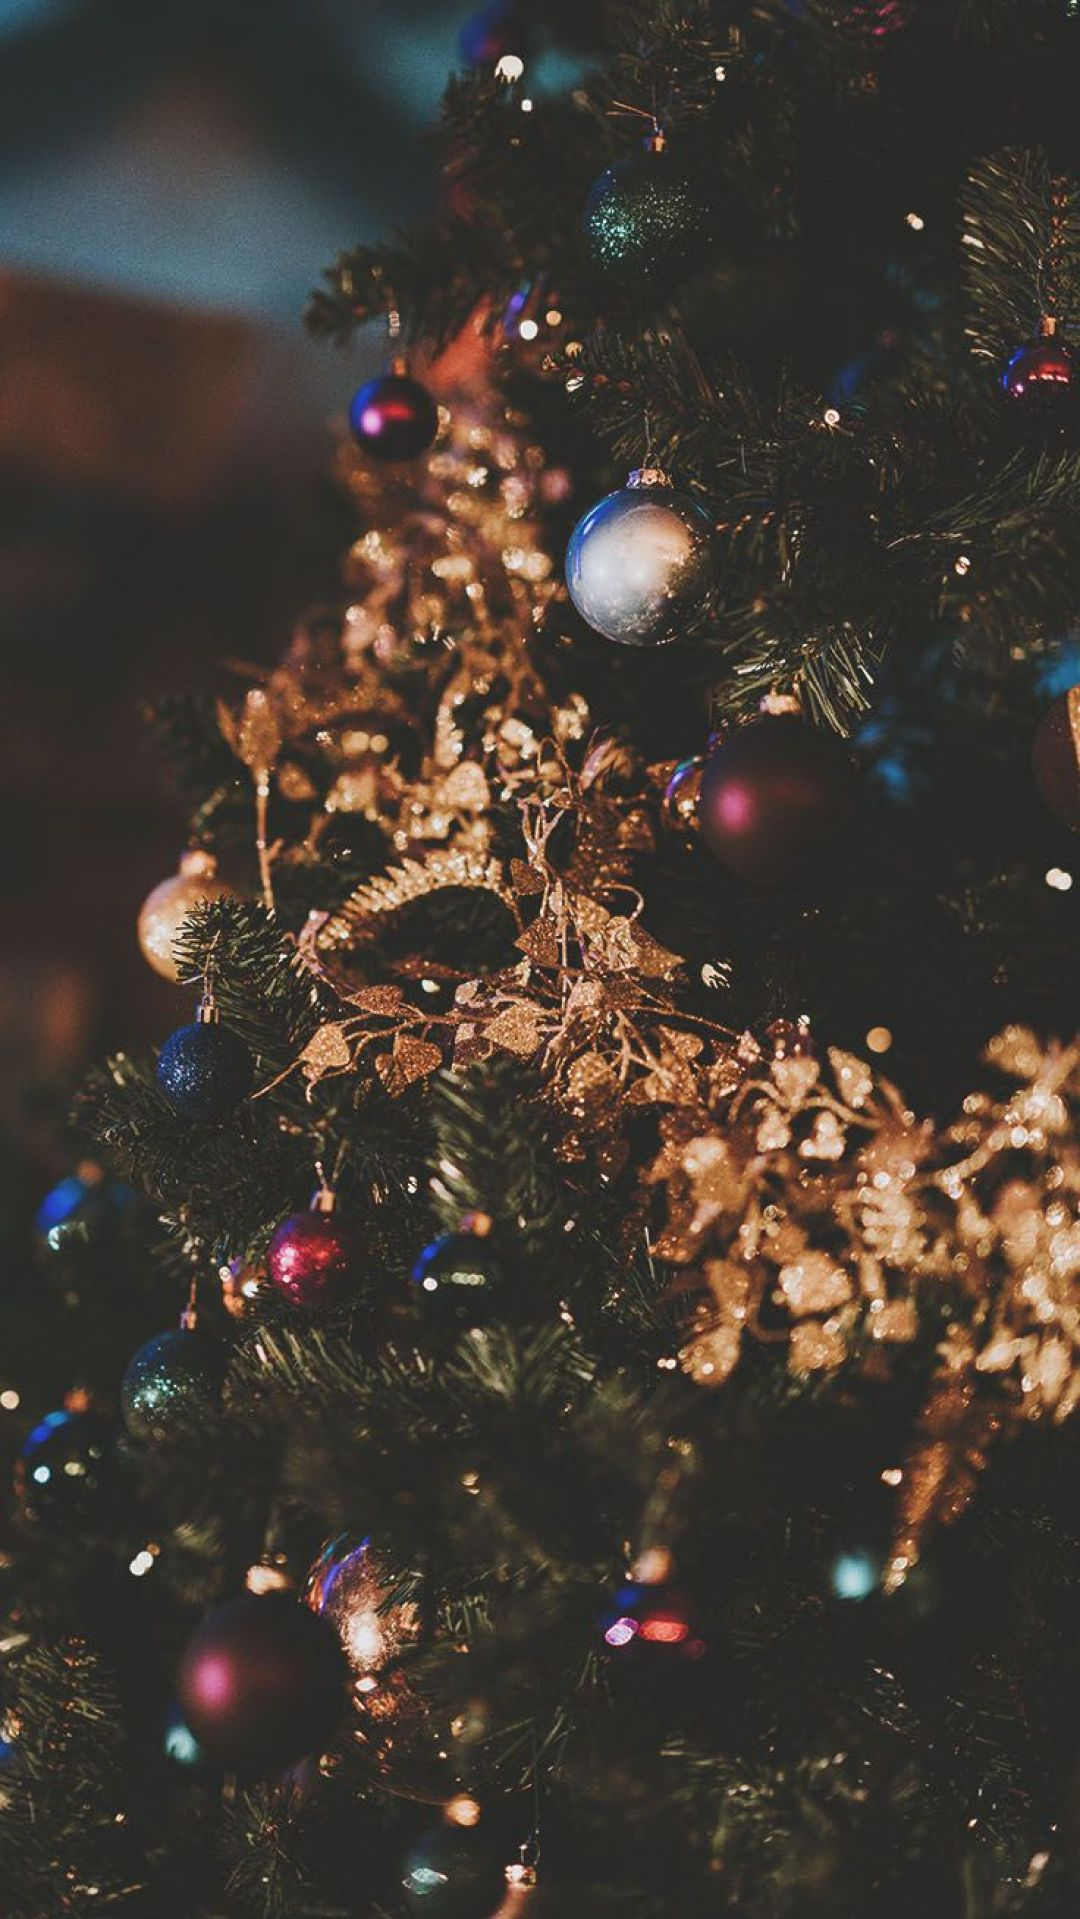 300 christmas aesthetic android iphone desktop hd backgrounds wallpapers 1080p 4k 1080x1919 2020 android iphone desktop hd backgrounds